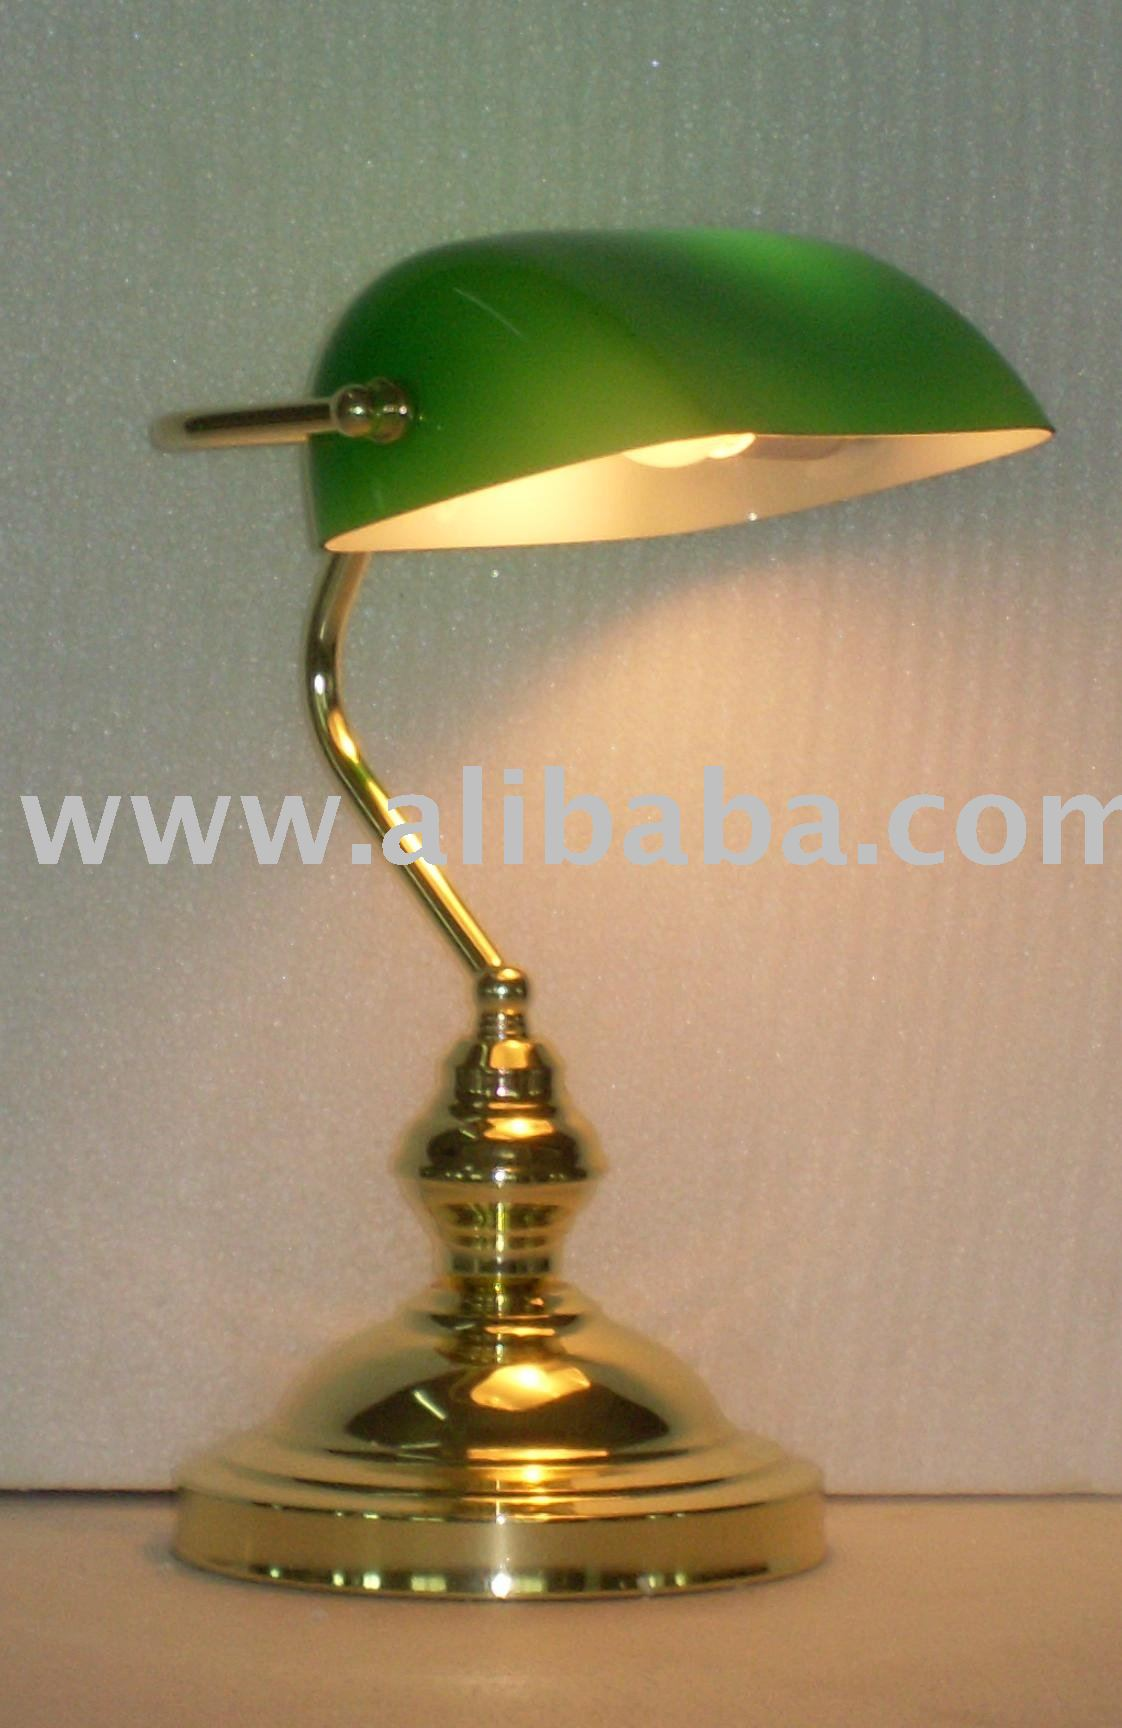 Banker lampbank lamp bank table lamp table lamphome lamp banker lampbank lamp bank table lamp table lamphome lamp aluminium table lampglass lampglass table lamp buy glass lampglass table lampbanker aloadofball